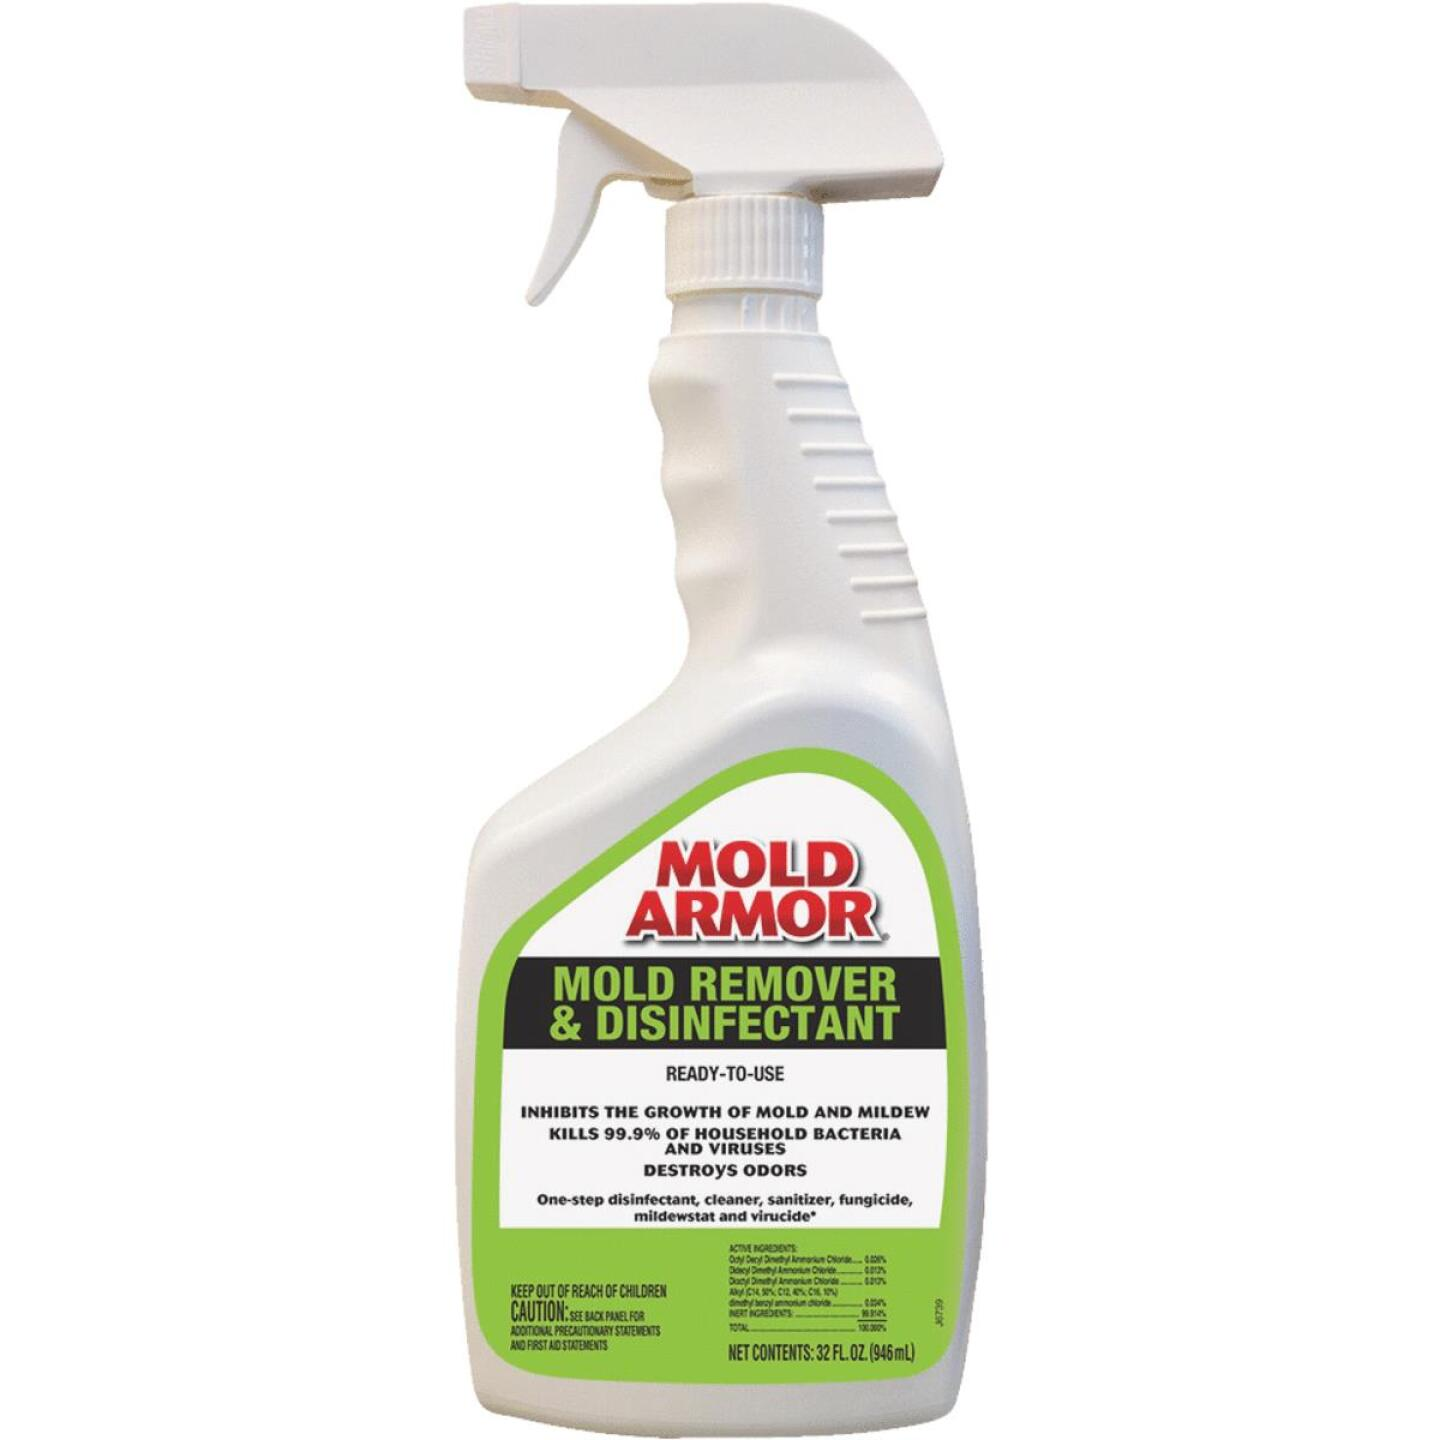 Mold Armor 32 Oz. Mold Remover and Disinfectant Image 1